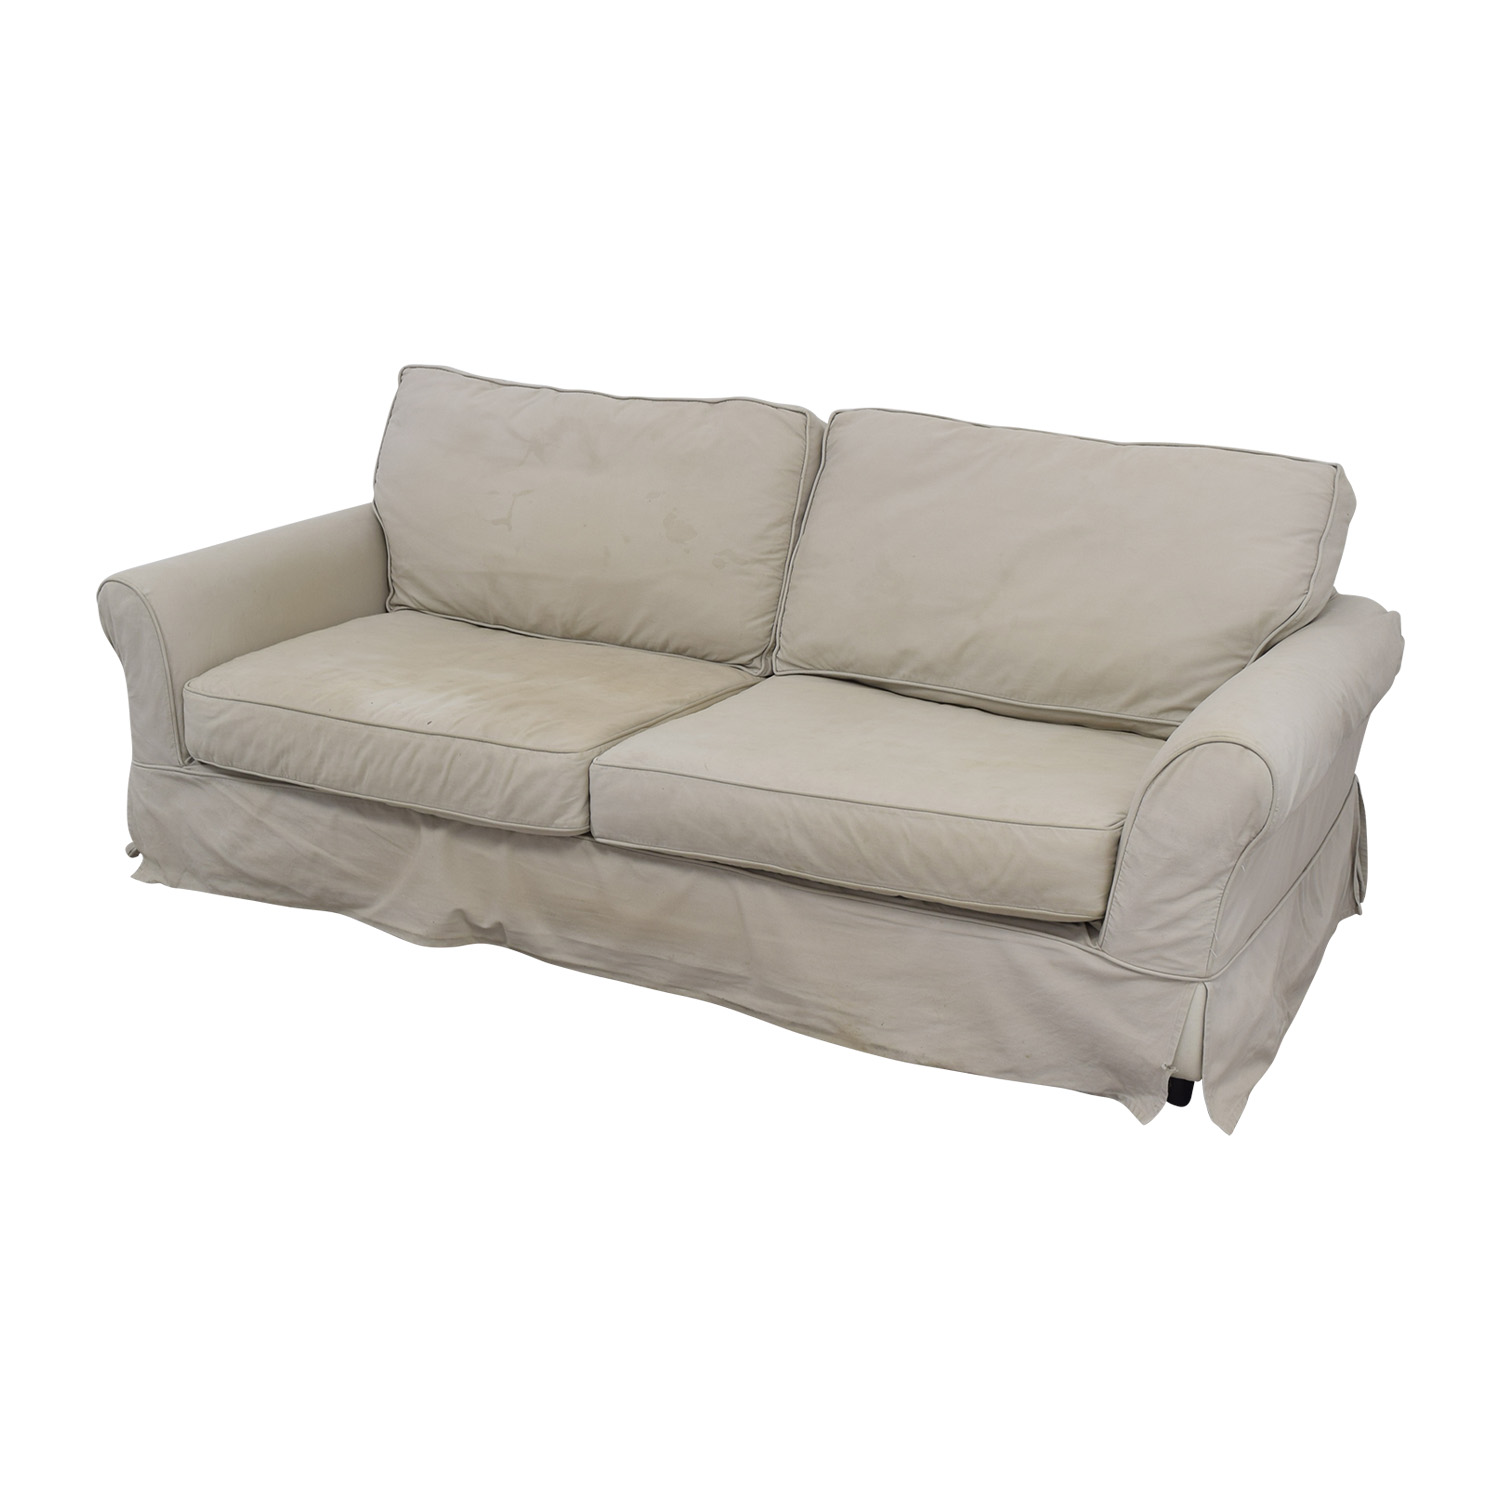 Suzanne Kasler Skirted Sofa Monterey 94 Skirted Sofa Ethan Allen Thesofa